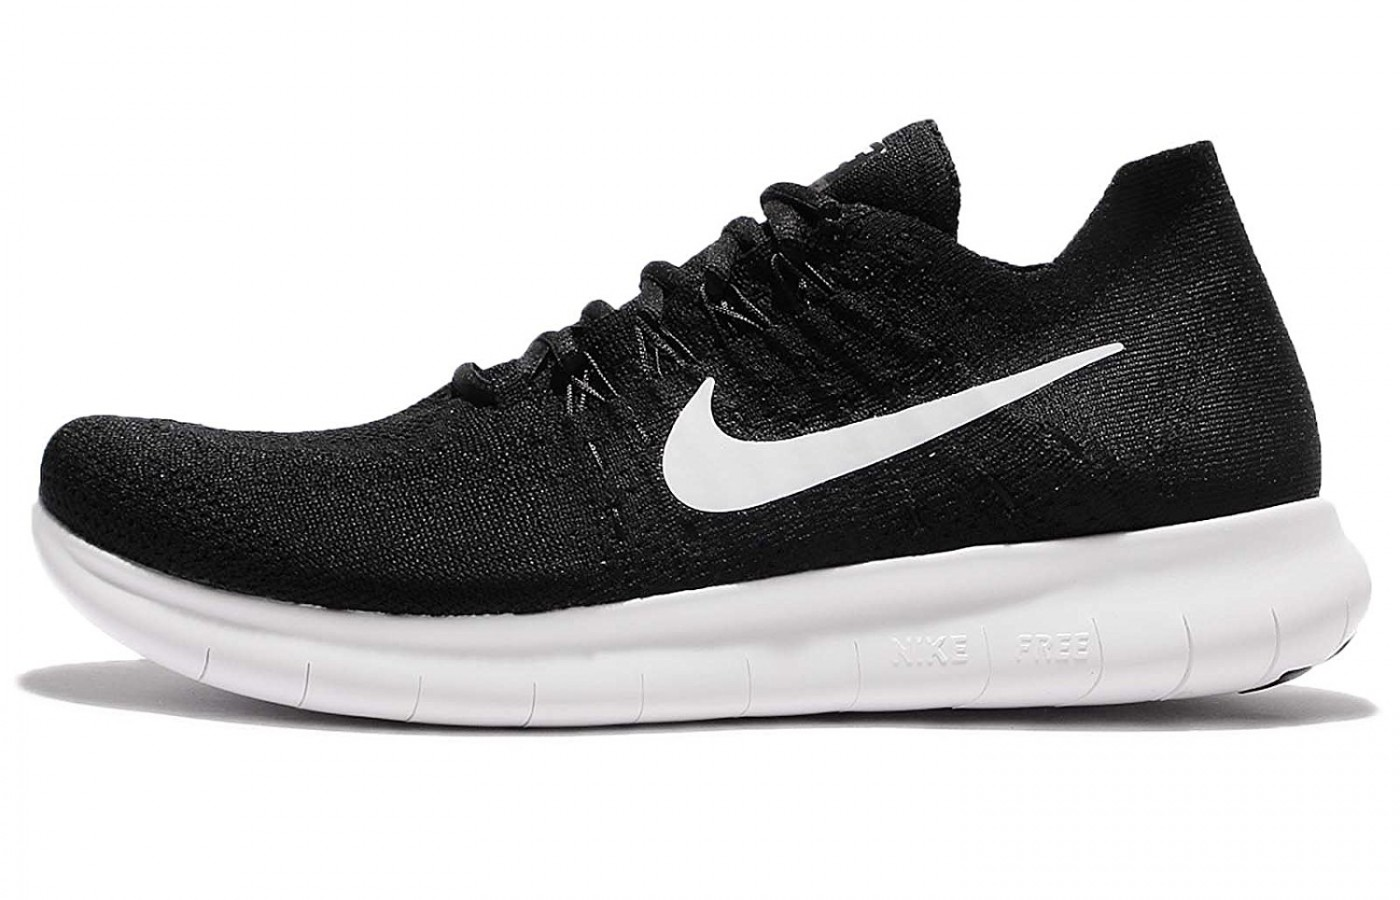 ea13801e3b1a Nike Free RN Flyknit 17 Reviewed   Tested for Performance in 2019 ...